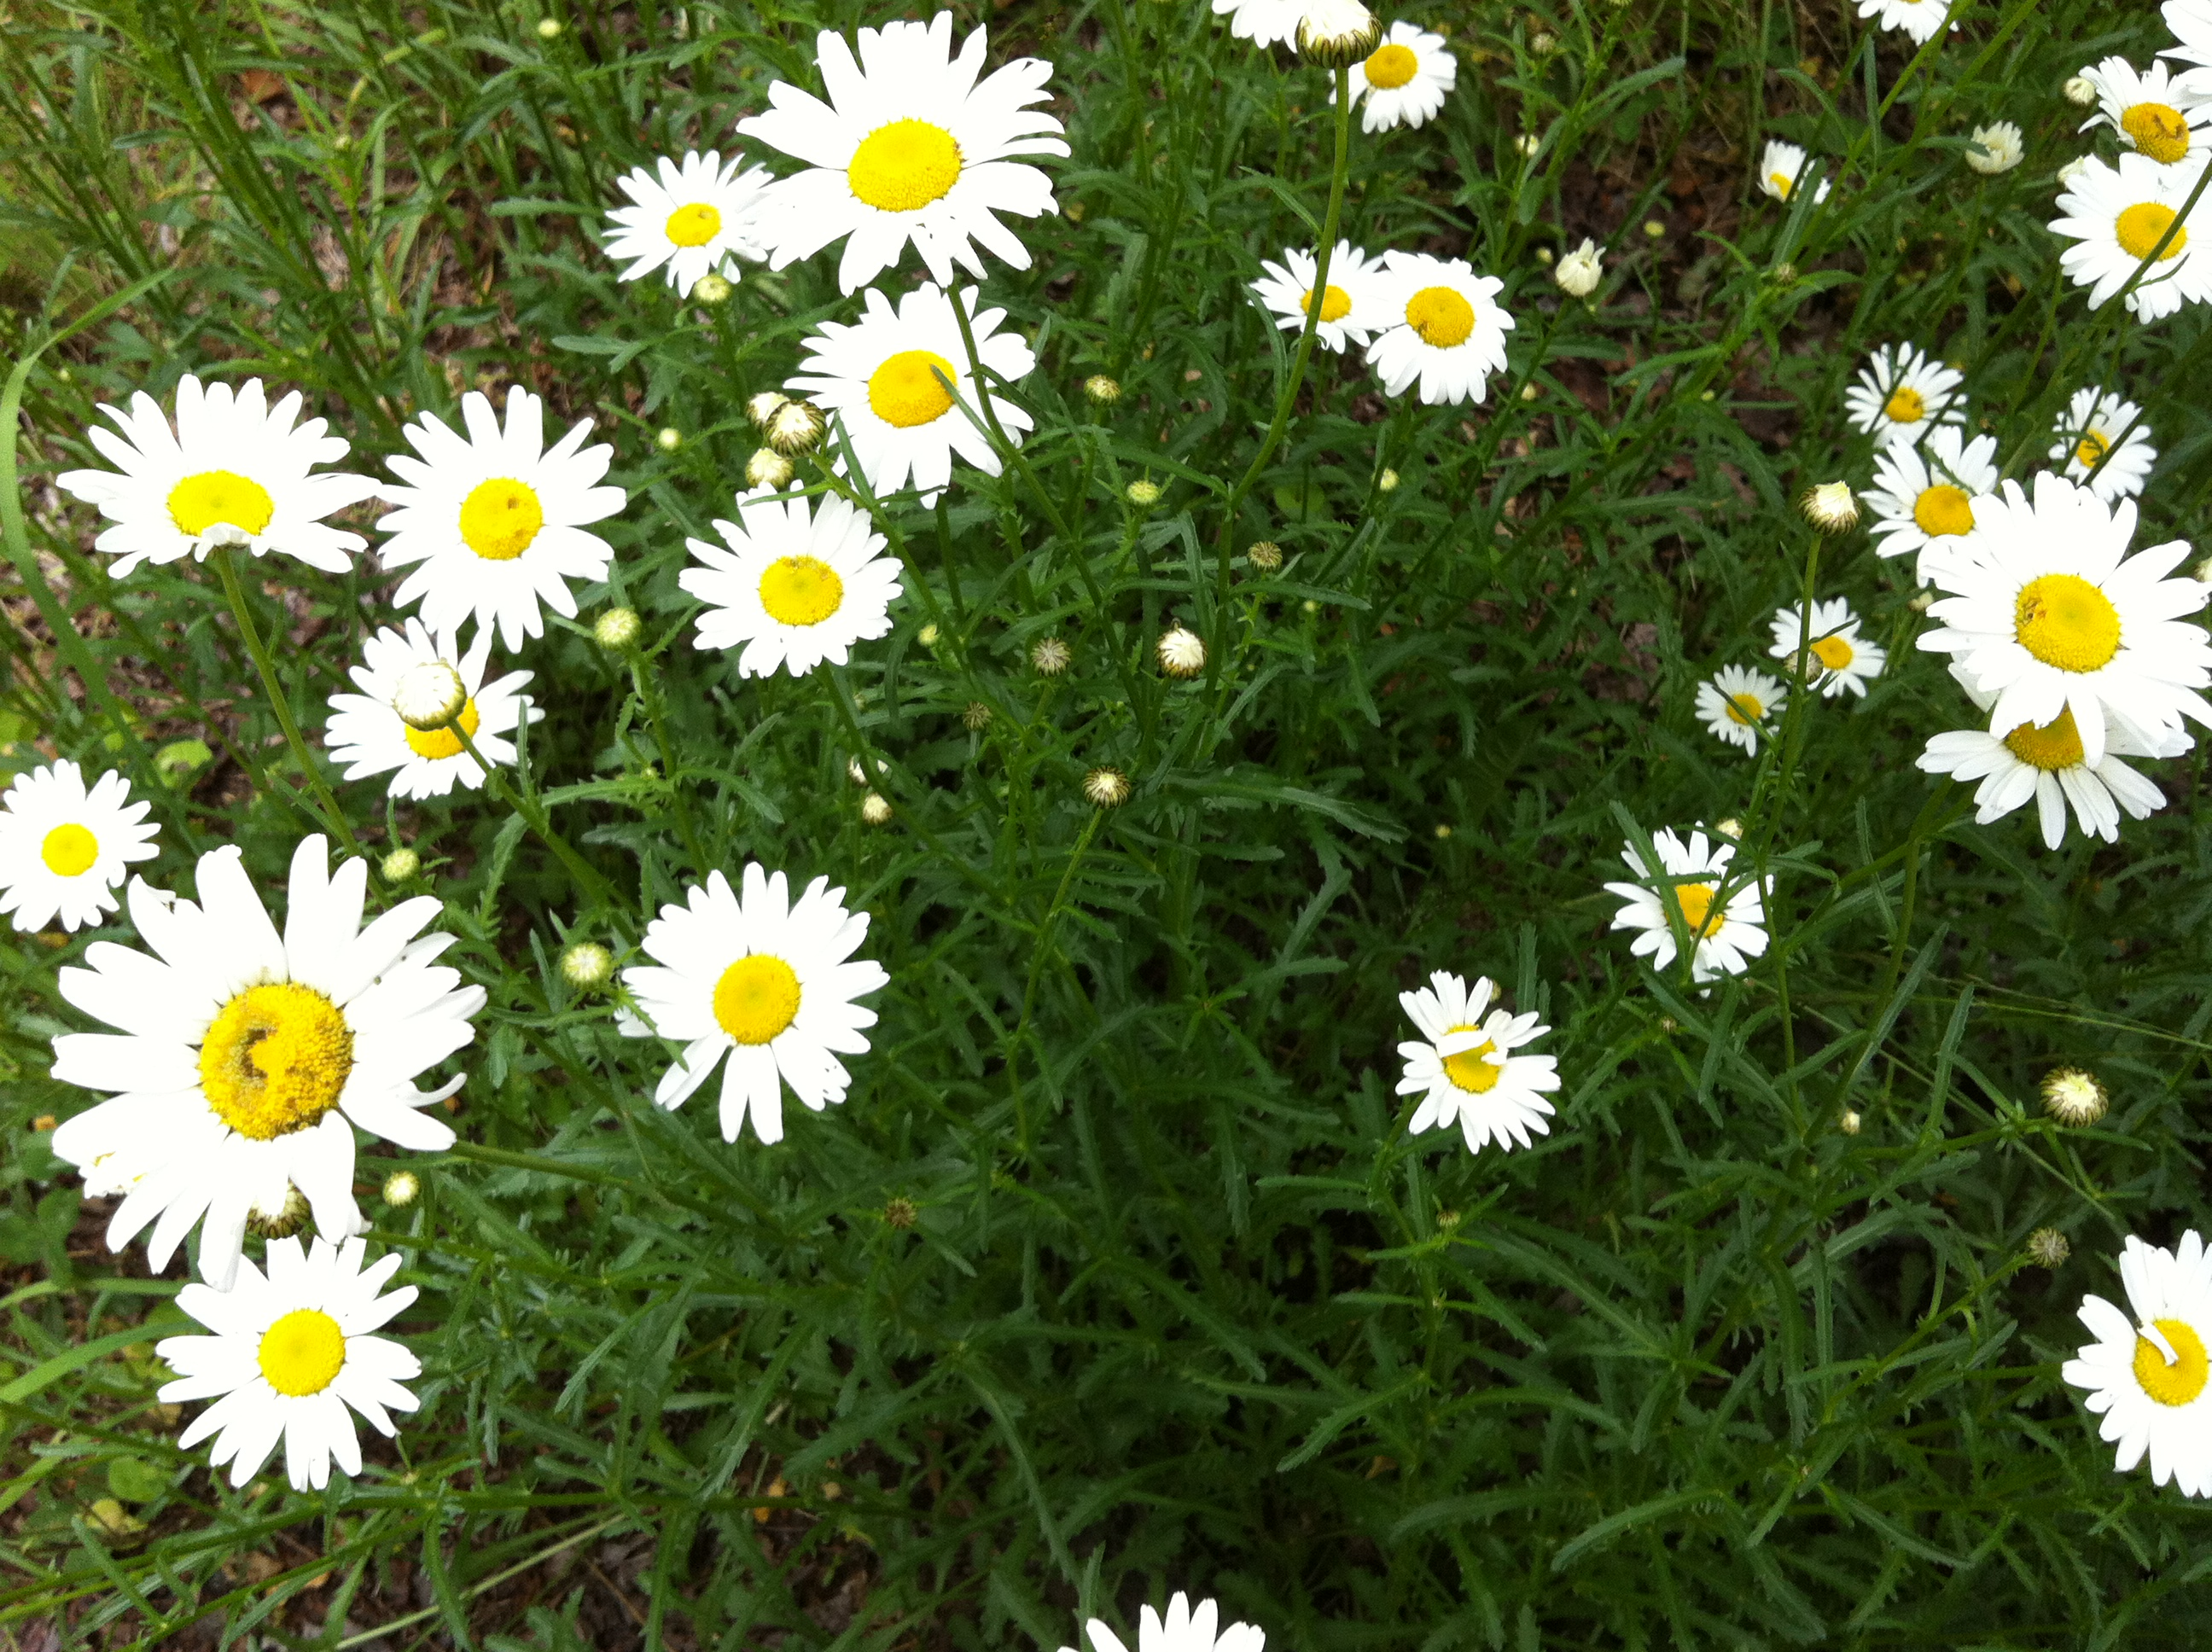 Daisies On My Walk